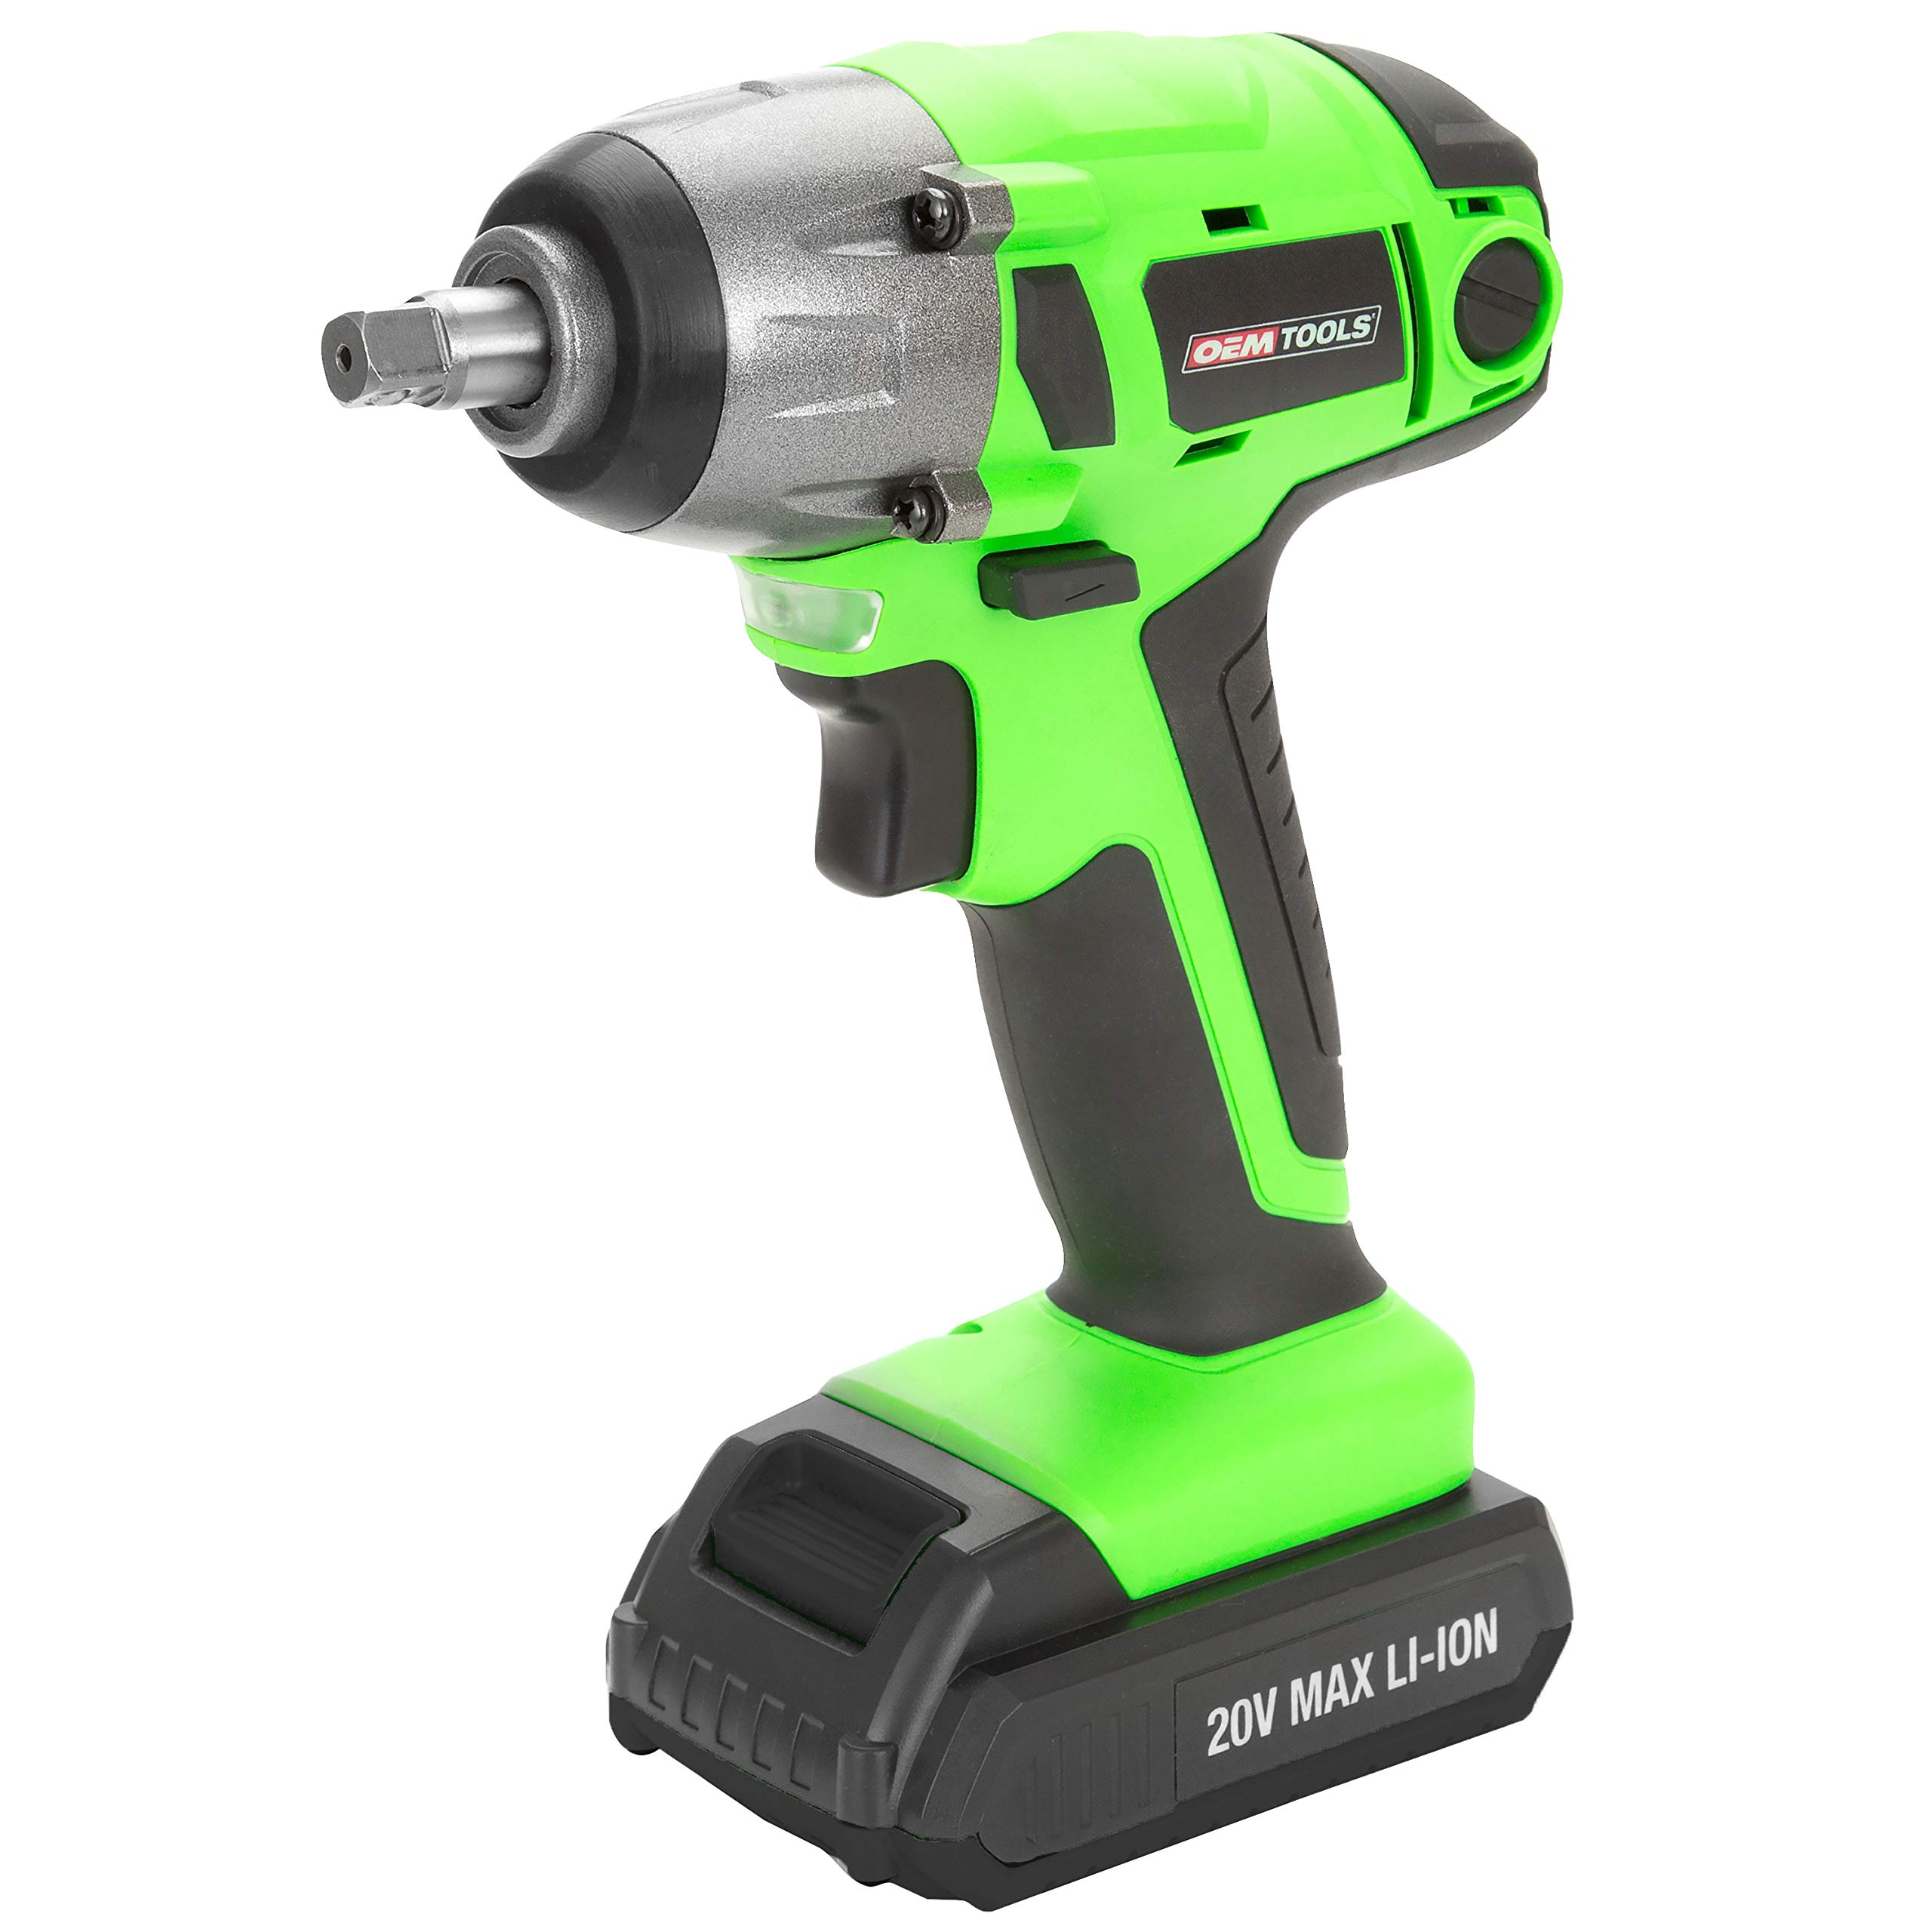 OEMTOOLS 24661 20V MAX Li-Ion 3/8 In. Drive Cordless Impact Wrench